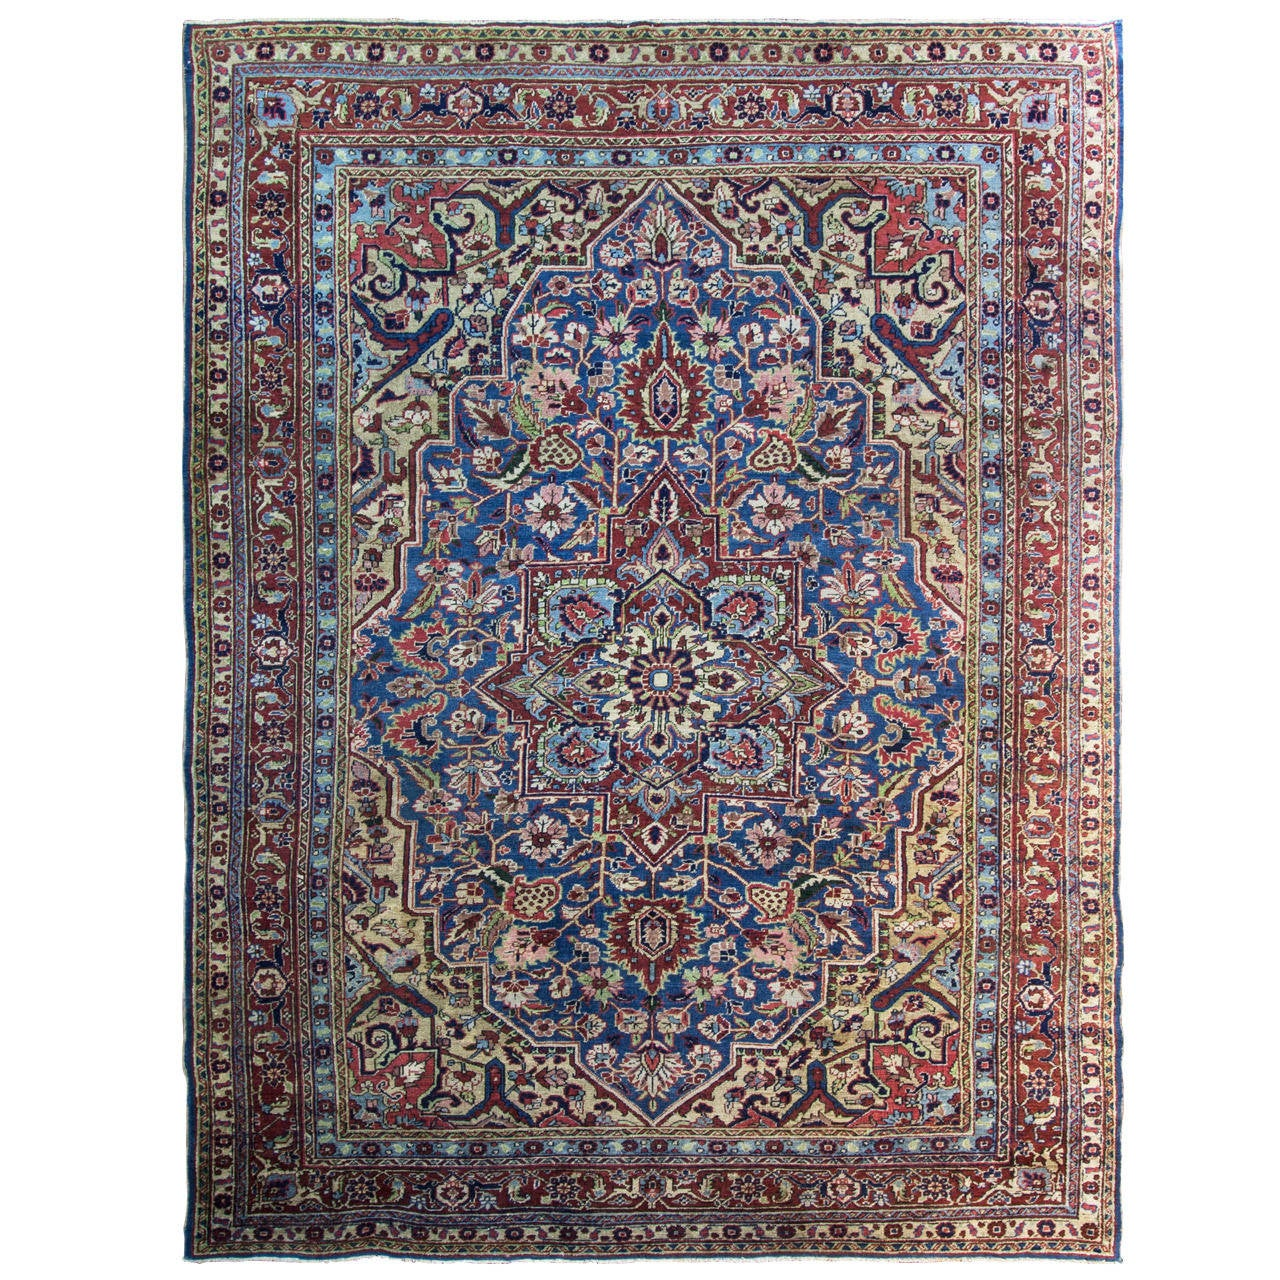 Persian Rugs For Sale: Heriz Carpet, Unusual Colors For Sale At 1stdibs